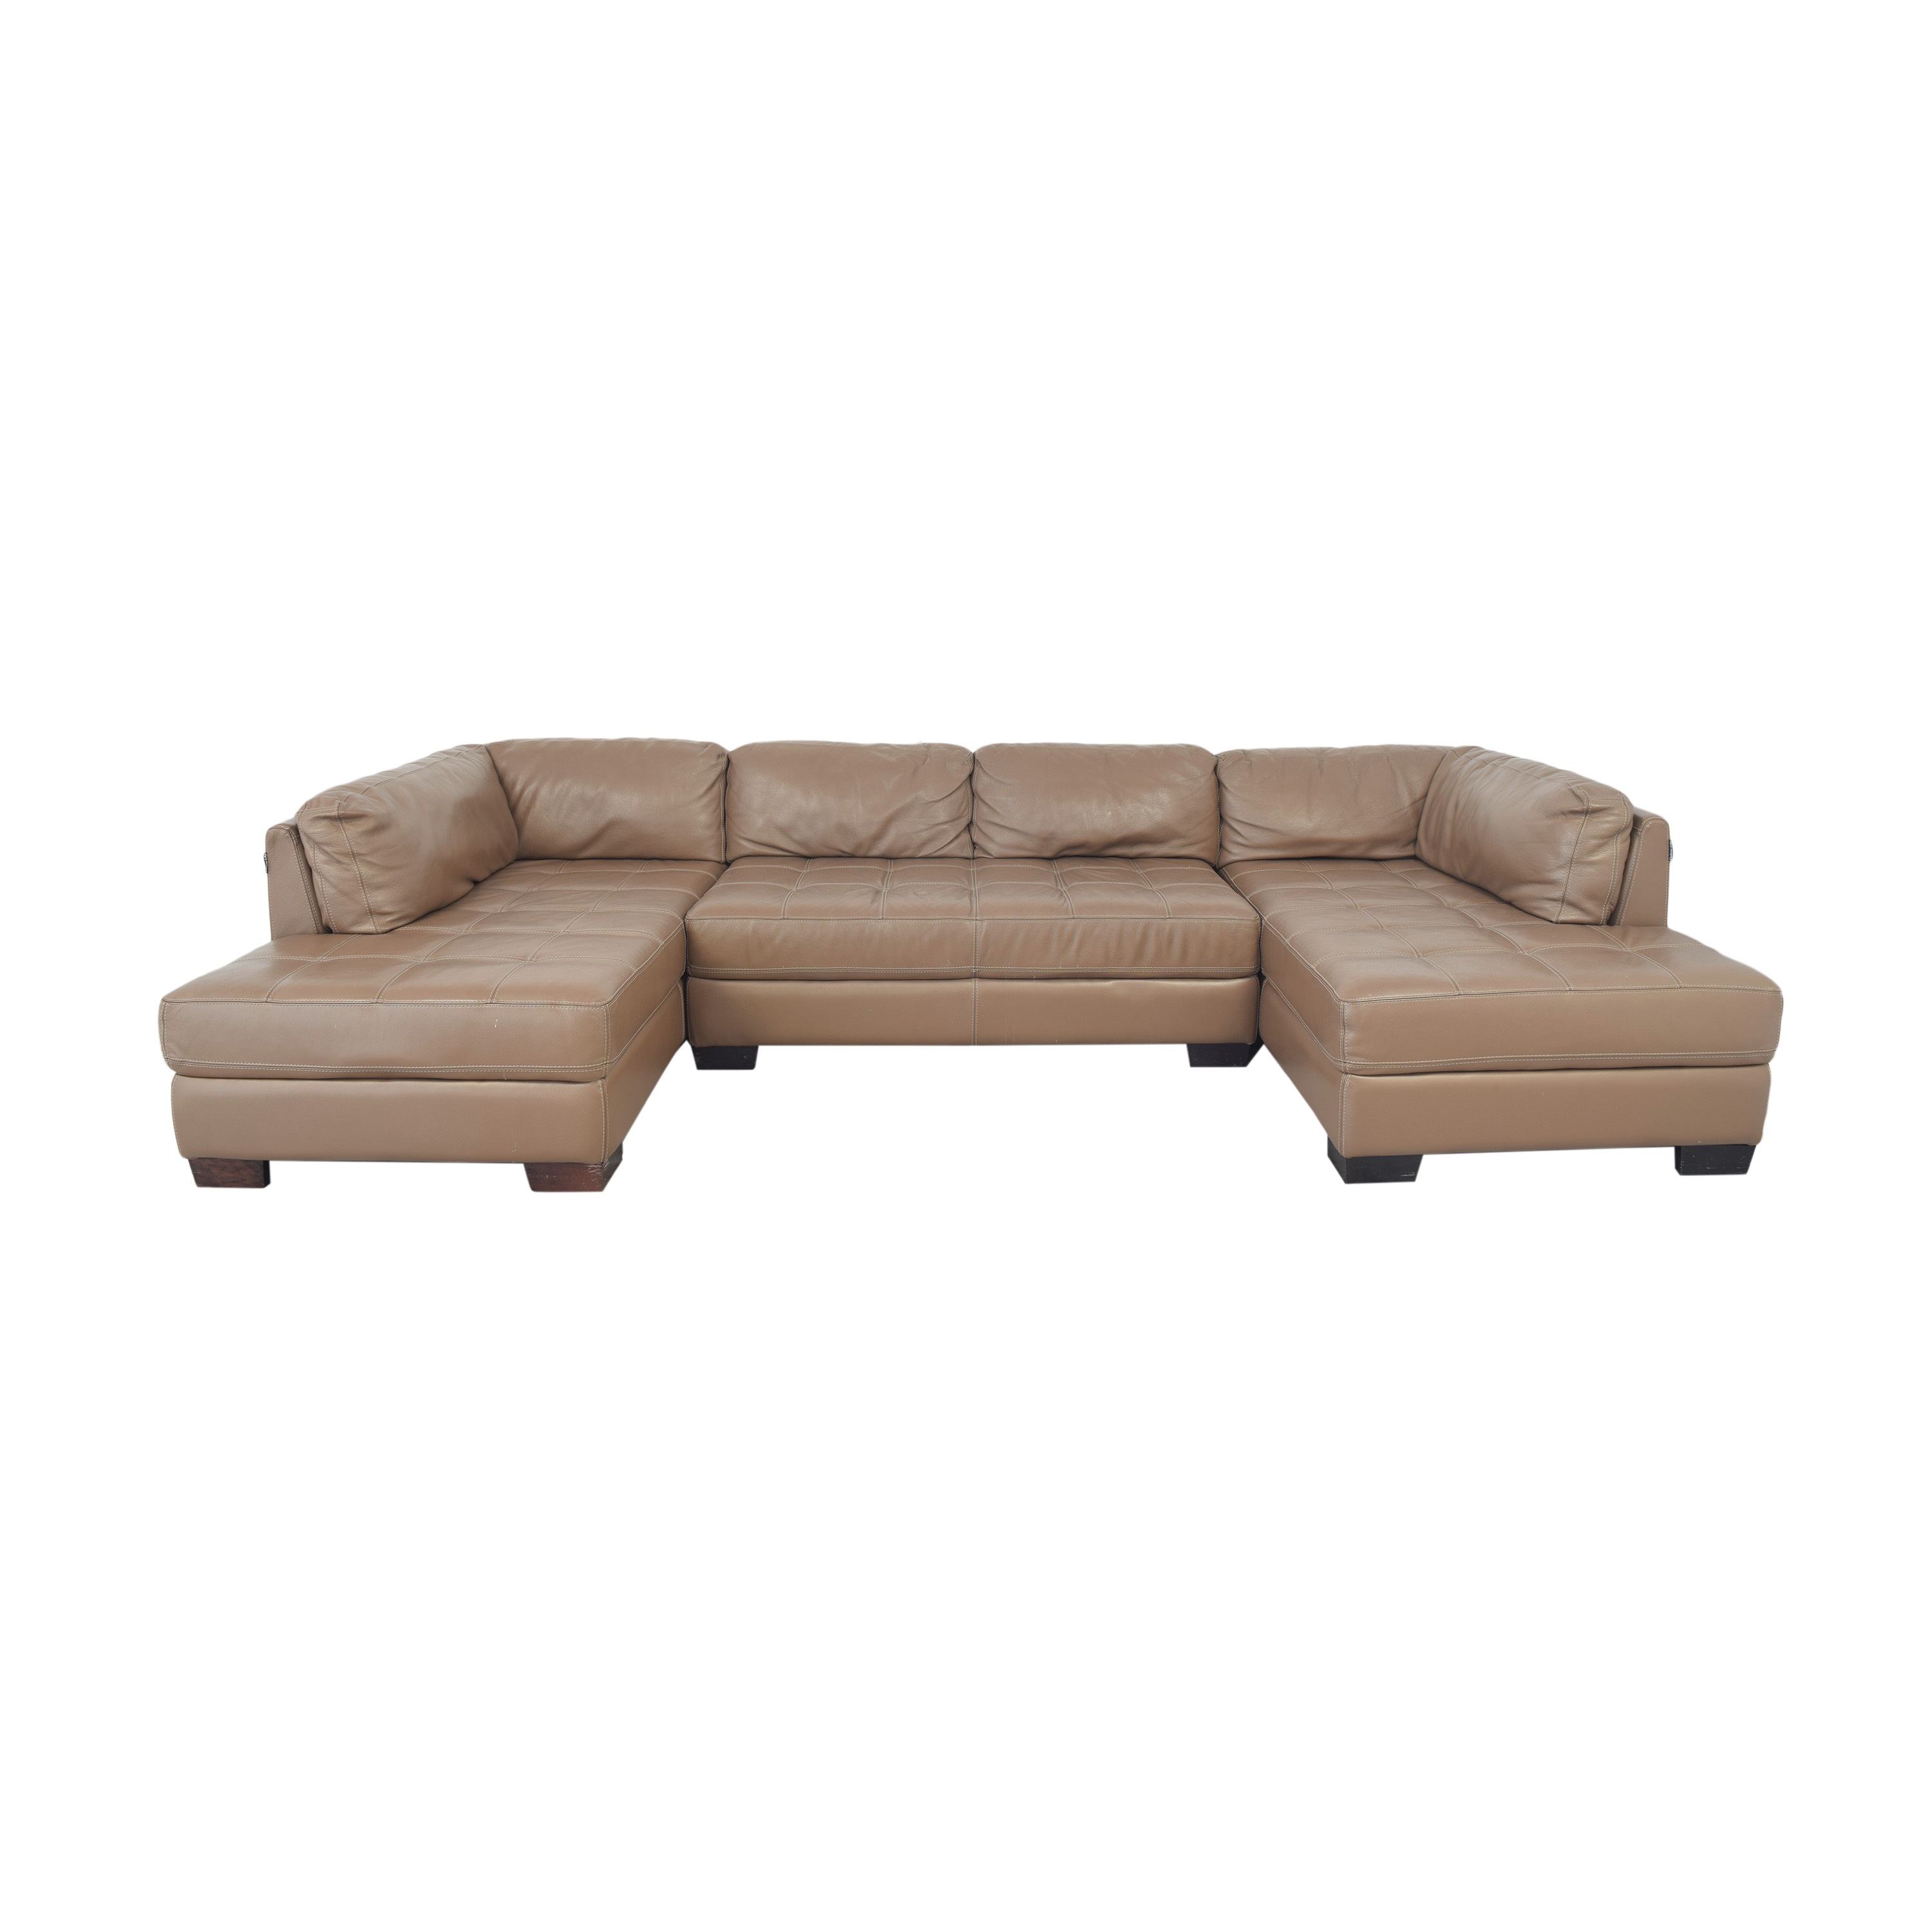 Chateau d'Ax Chateau d'Ax Becker Sectional Sofa for sale